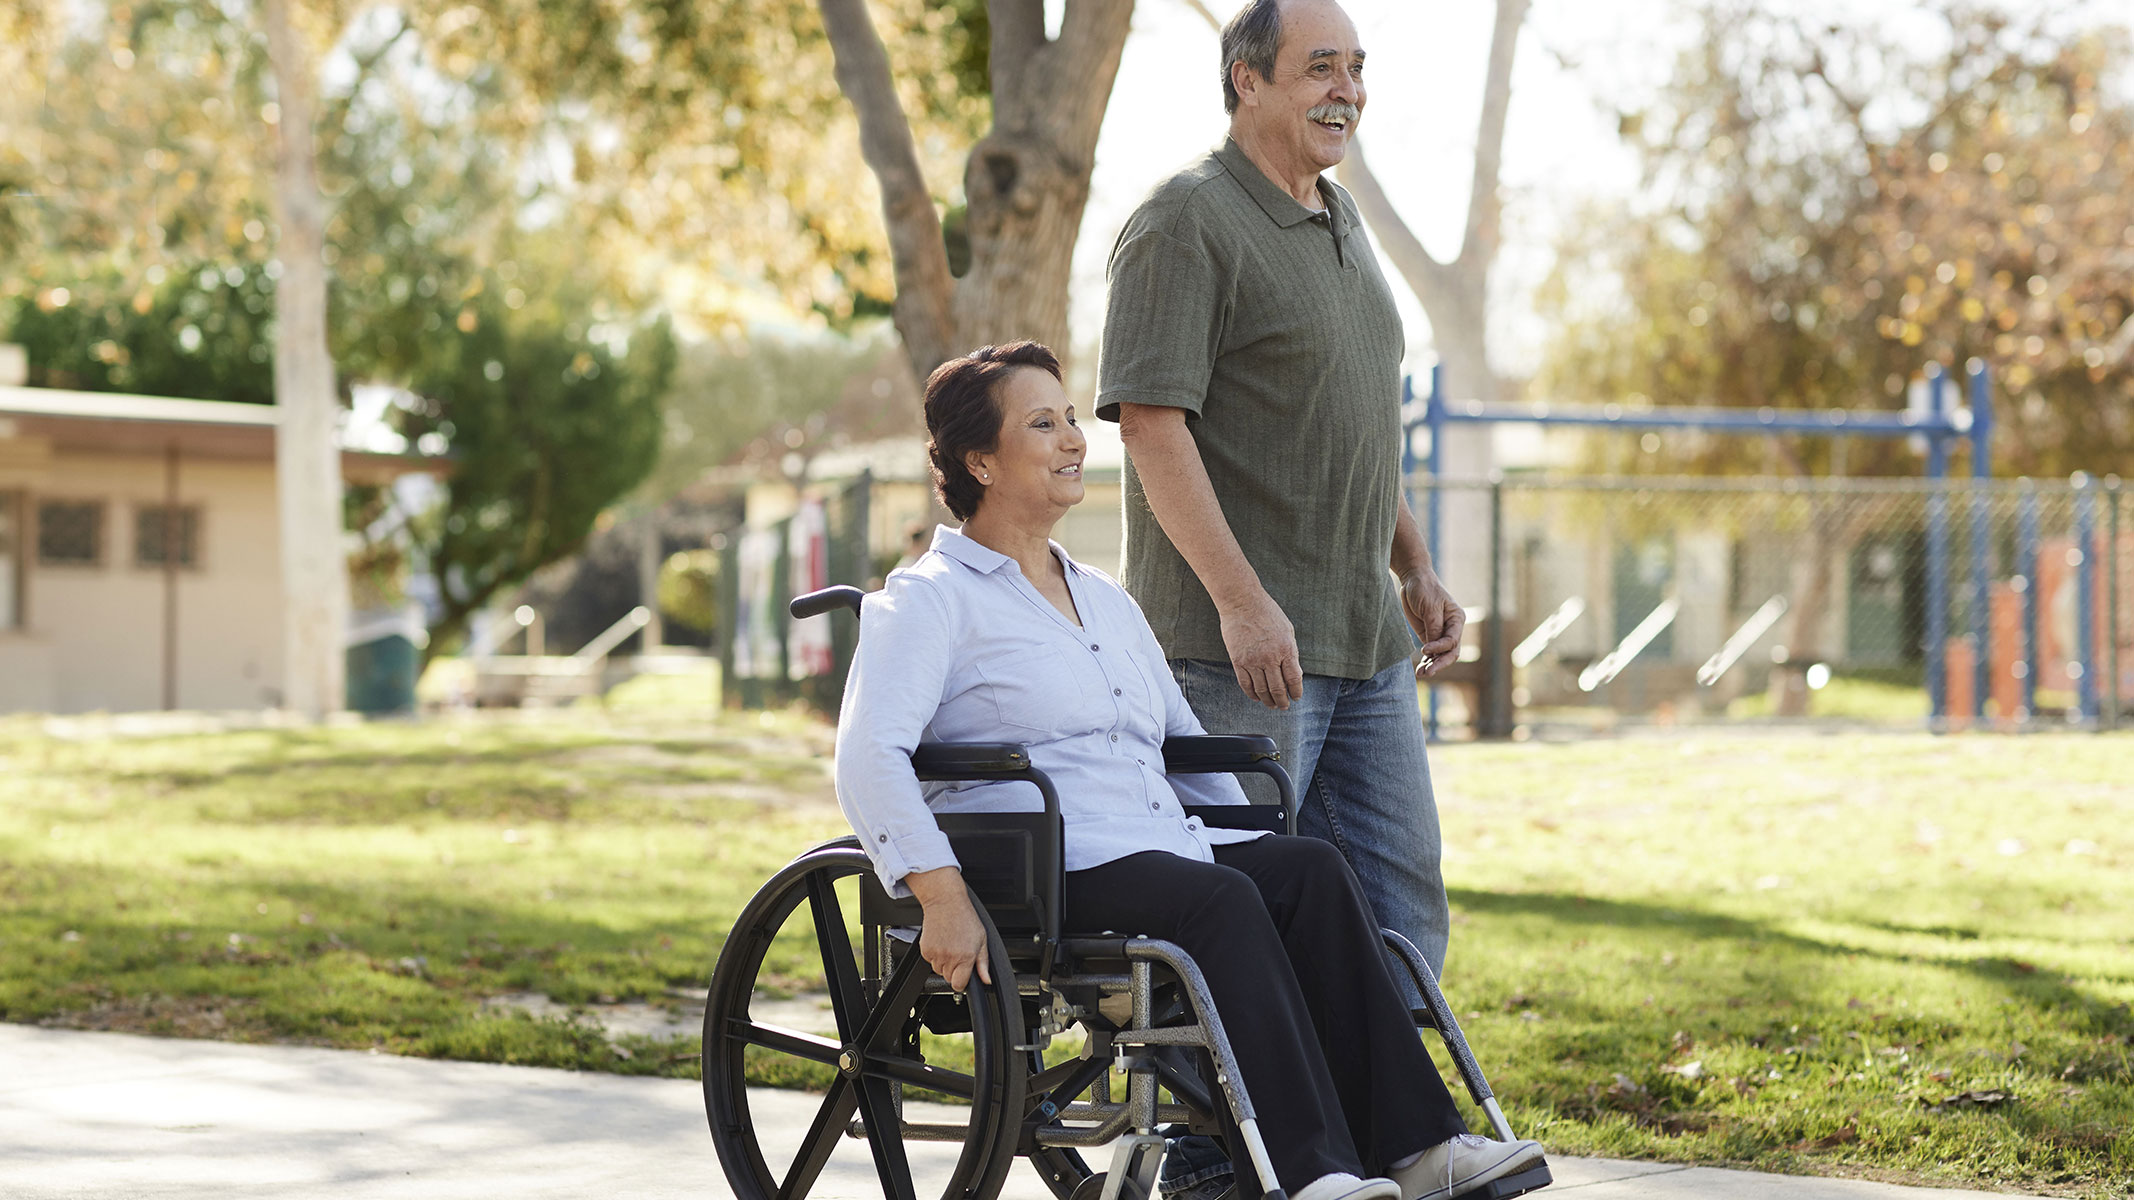 A man and woman in a wheel chair go for a stroll by a park.